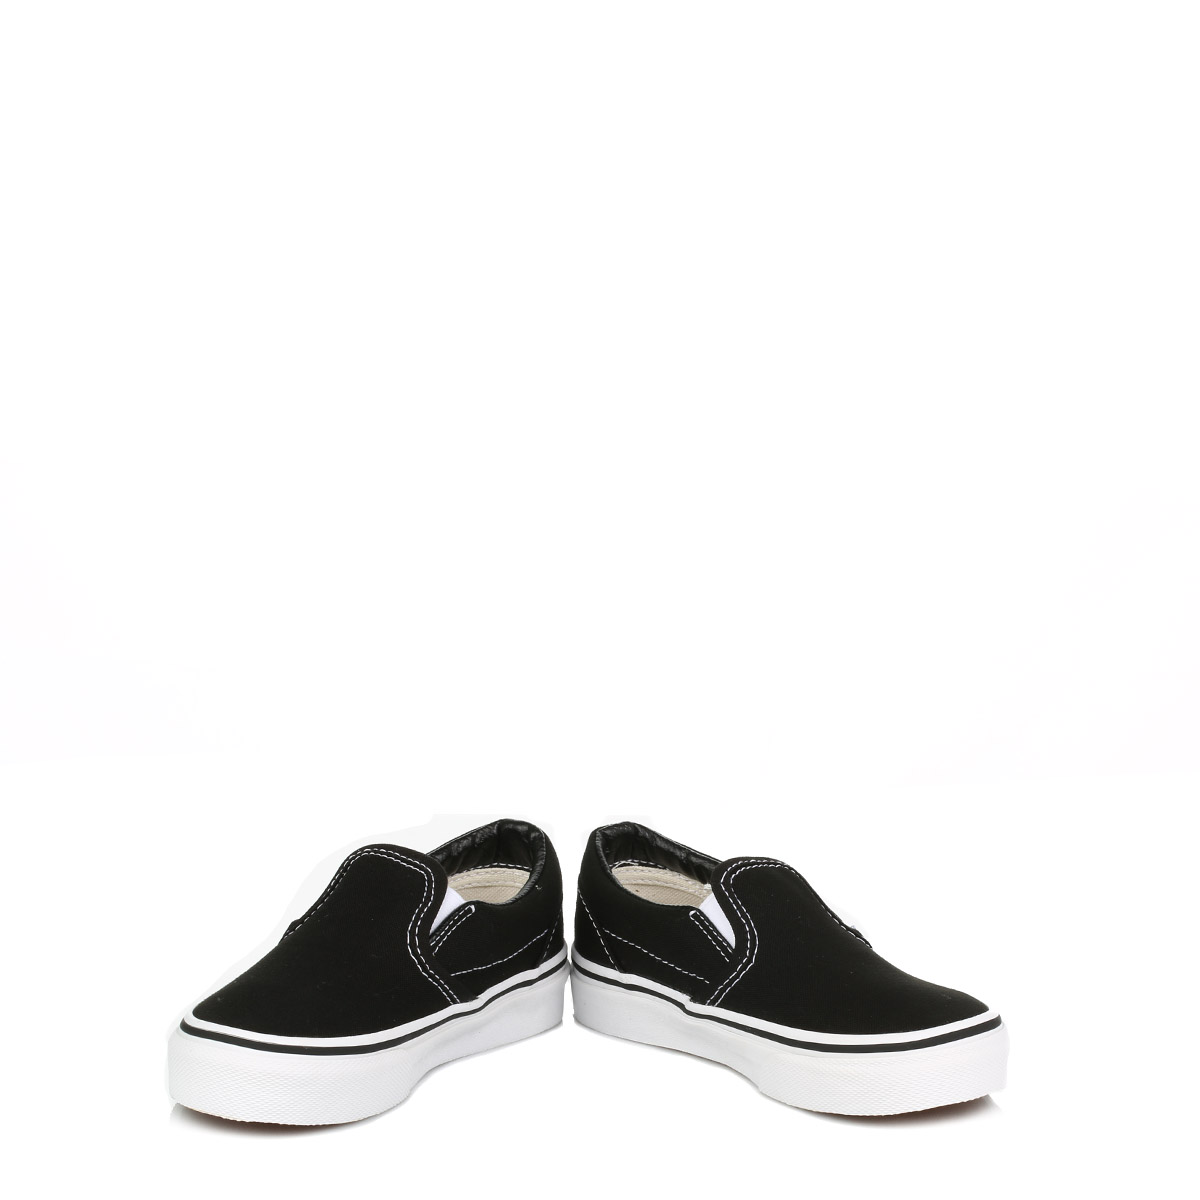 Find great deals on eBay for kids canvas shoe. Shop with confidence.